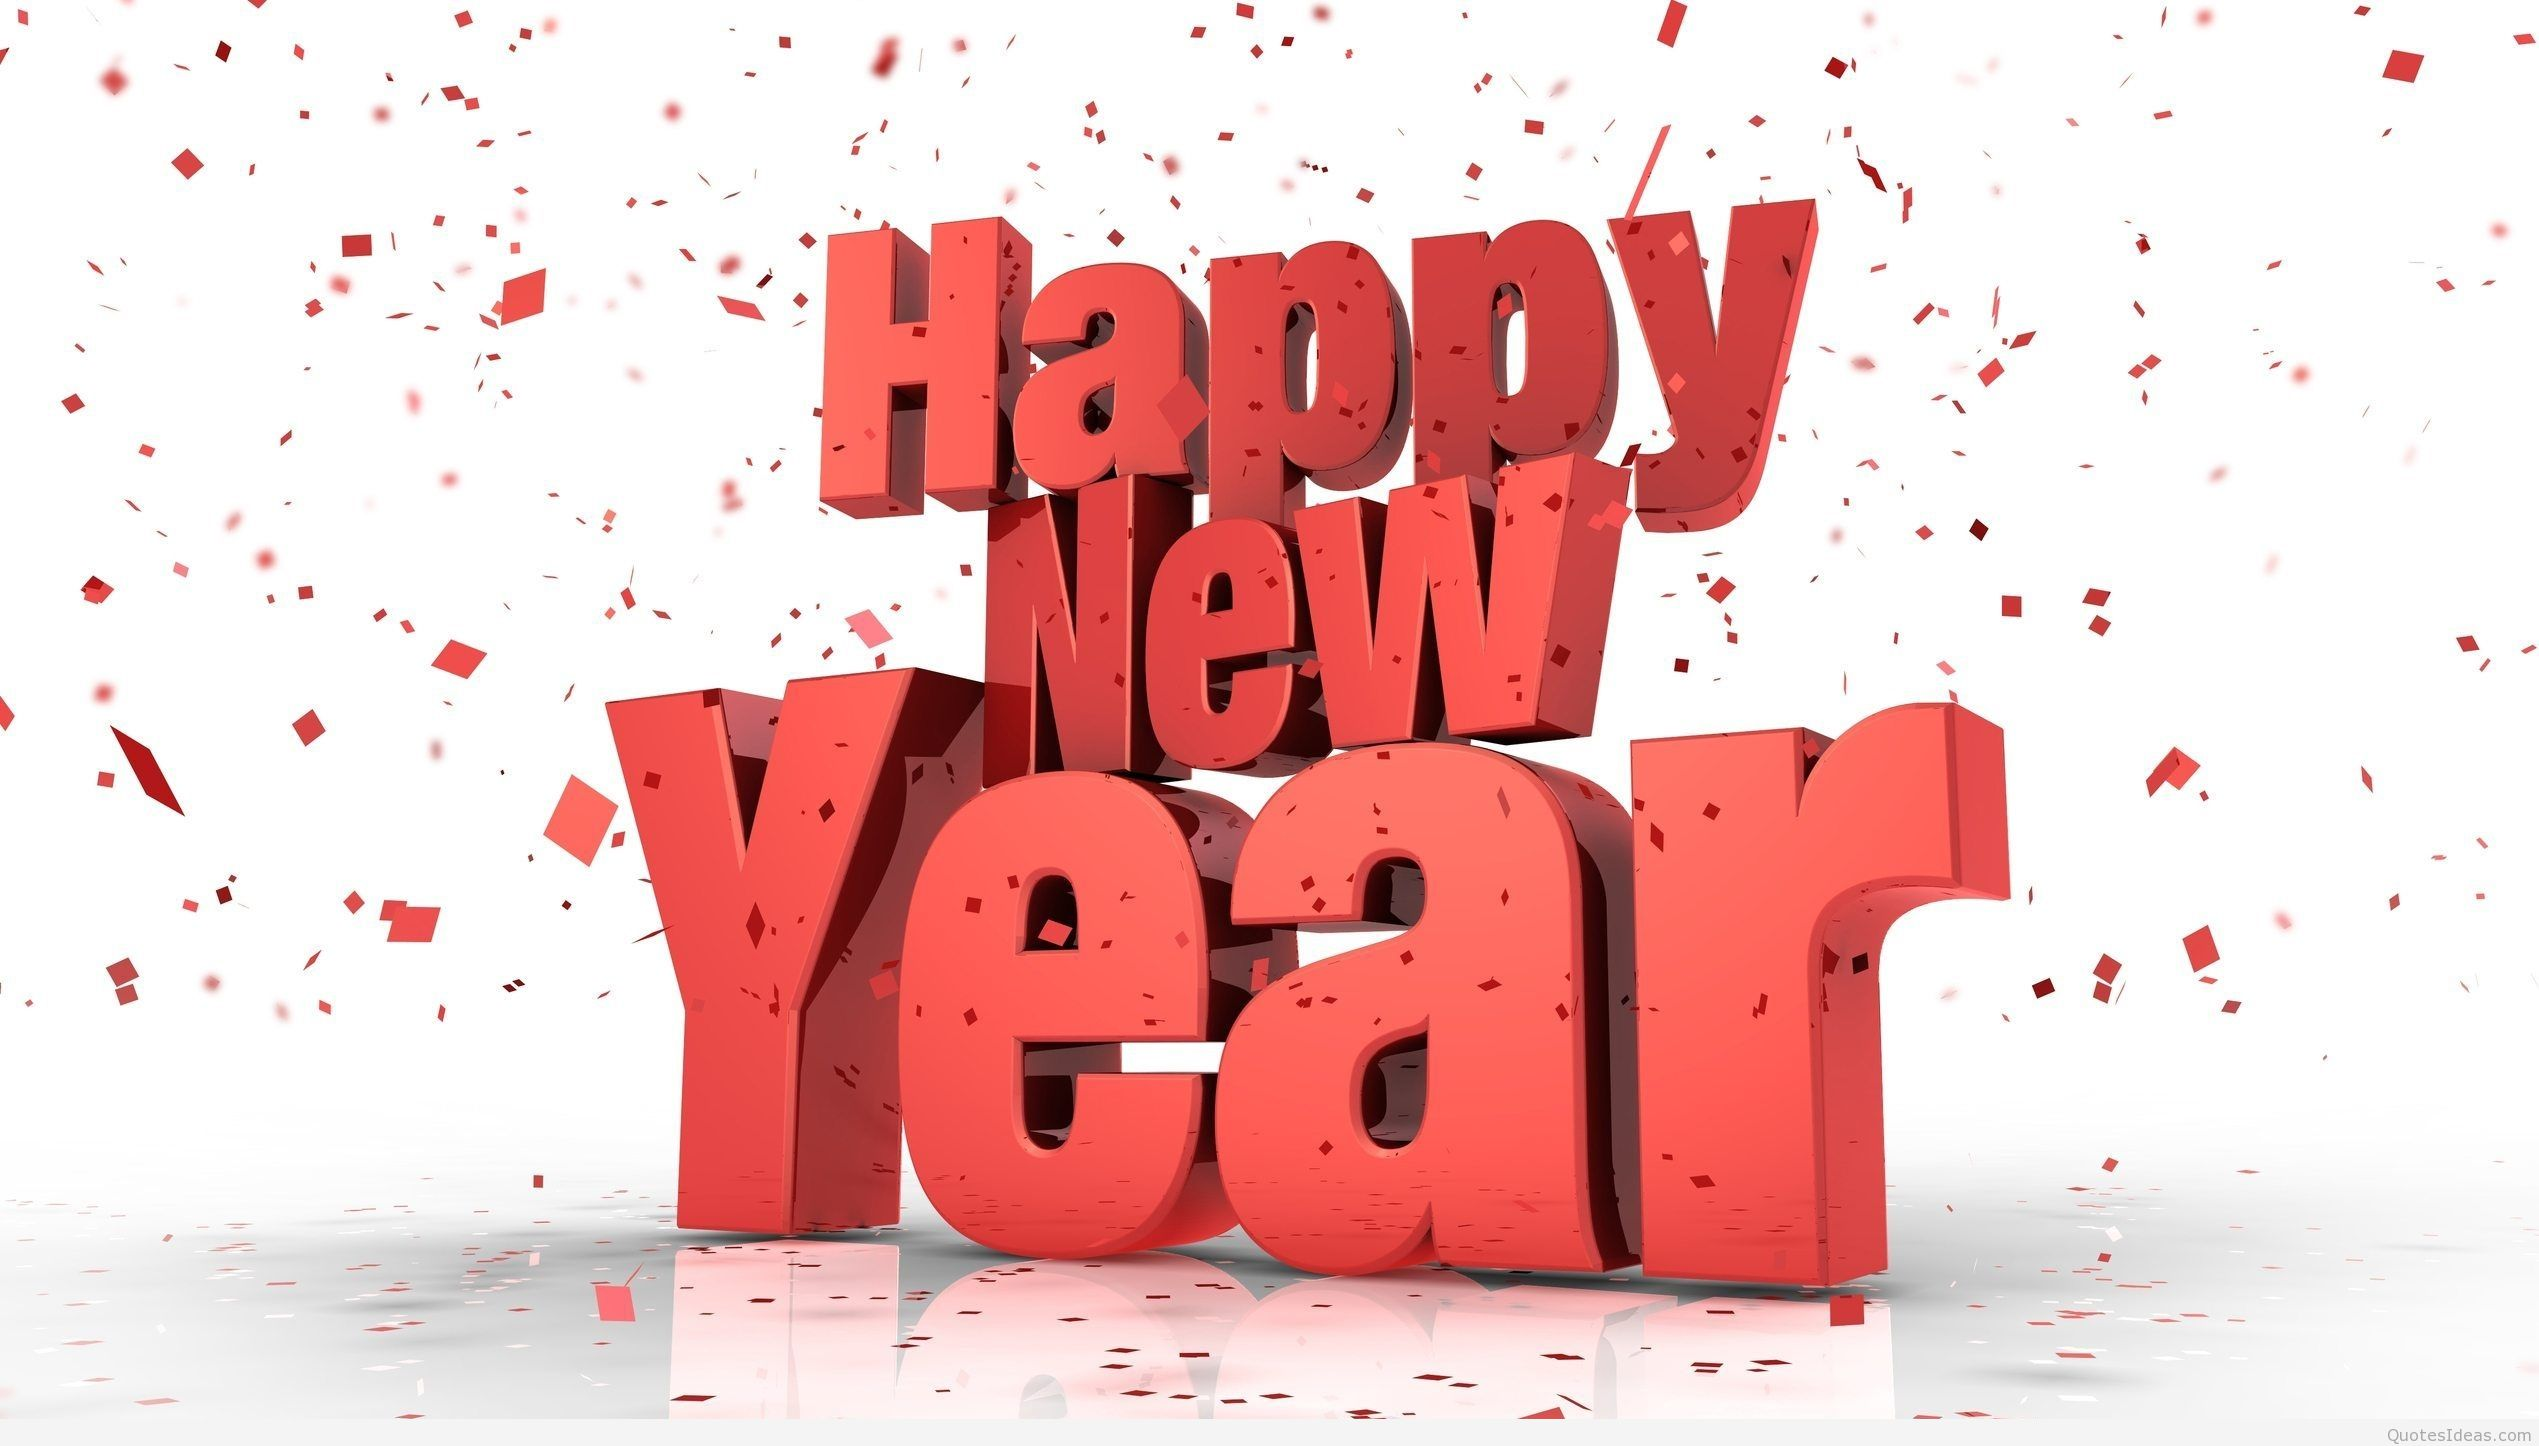 Happy-new-year 2016 HD profile pictures